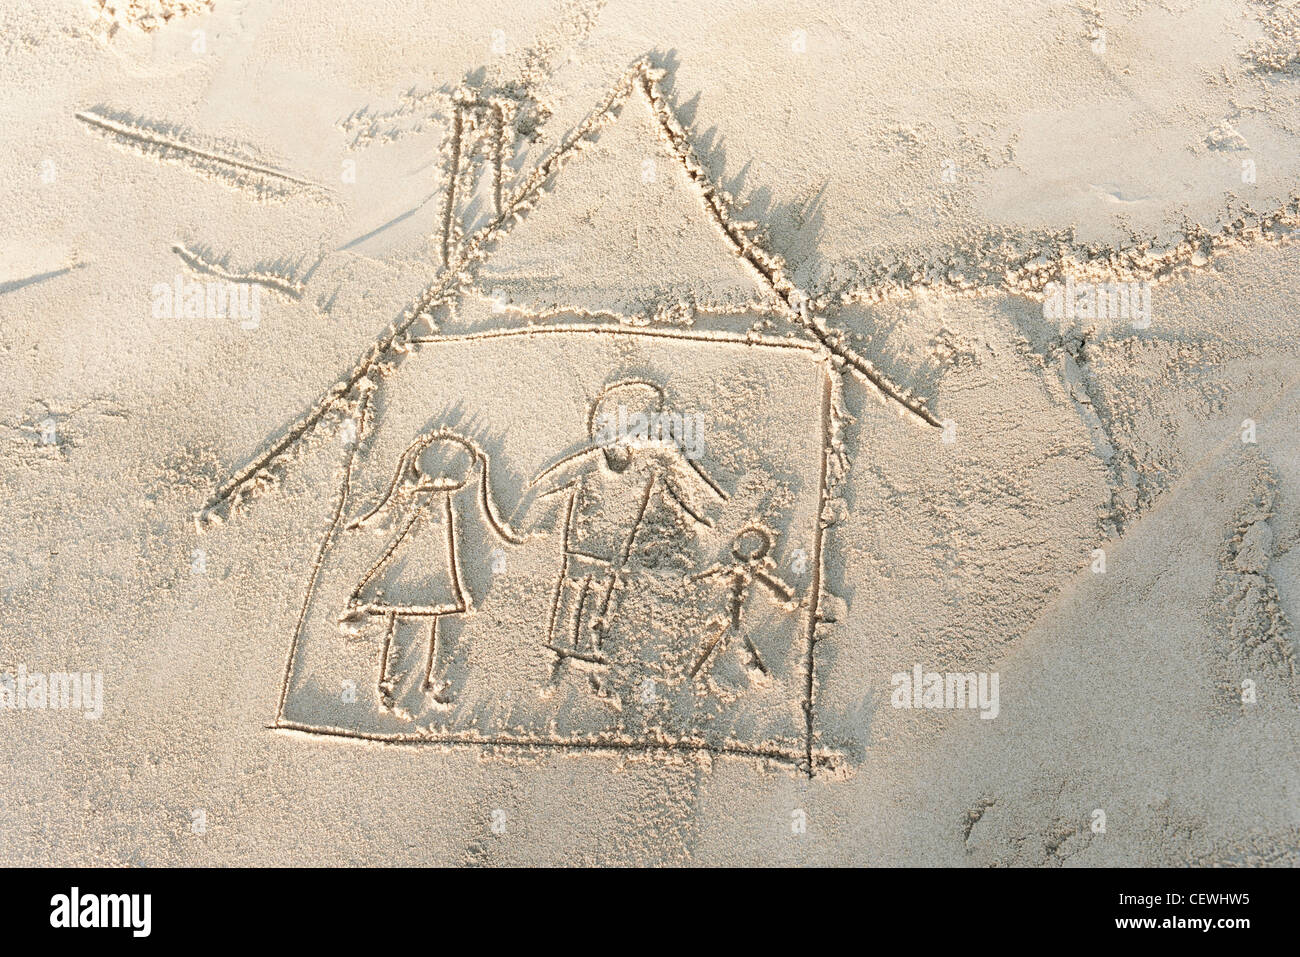 Drawing of family in house in sand, high angle view - Stock Image